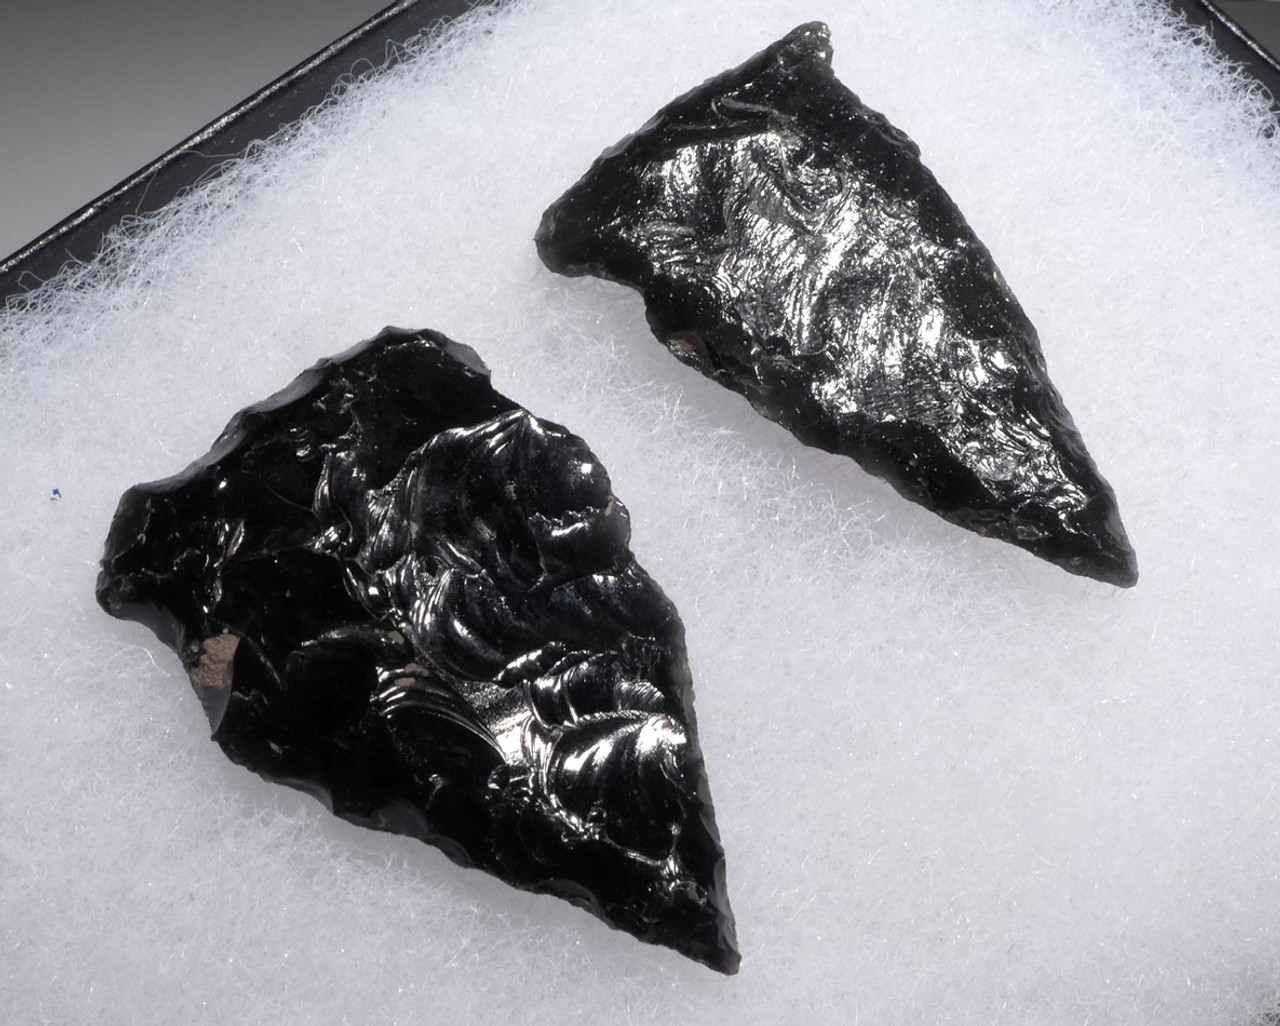 TWO SIDE NOTCHED ATLATL PRE-COLUMBIAN OBSIDIAN SPEARHEADS FROM THE HEFLIN COLLECTION *PC292